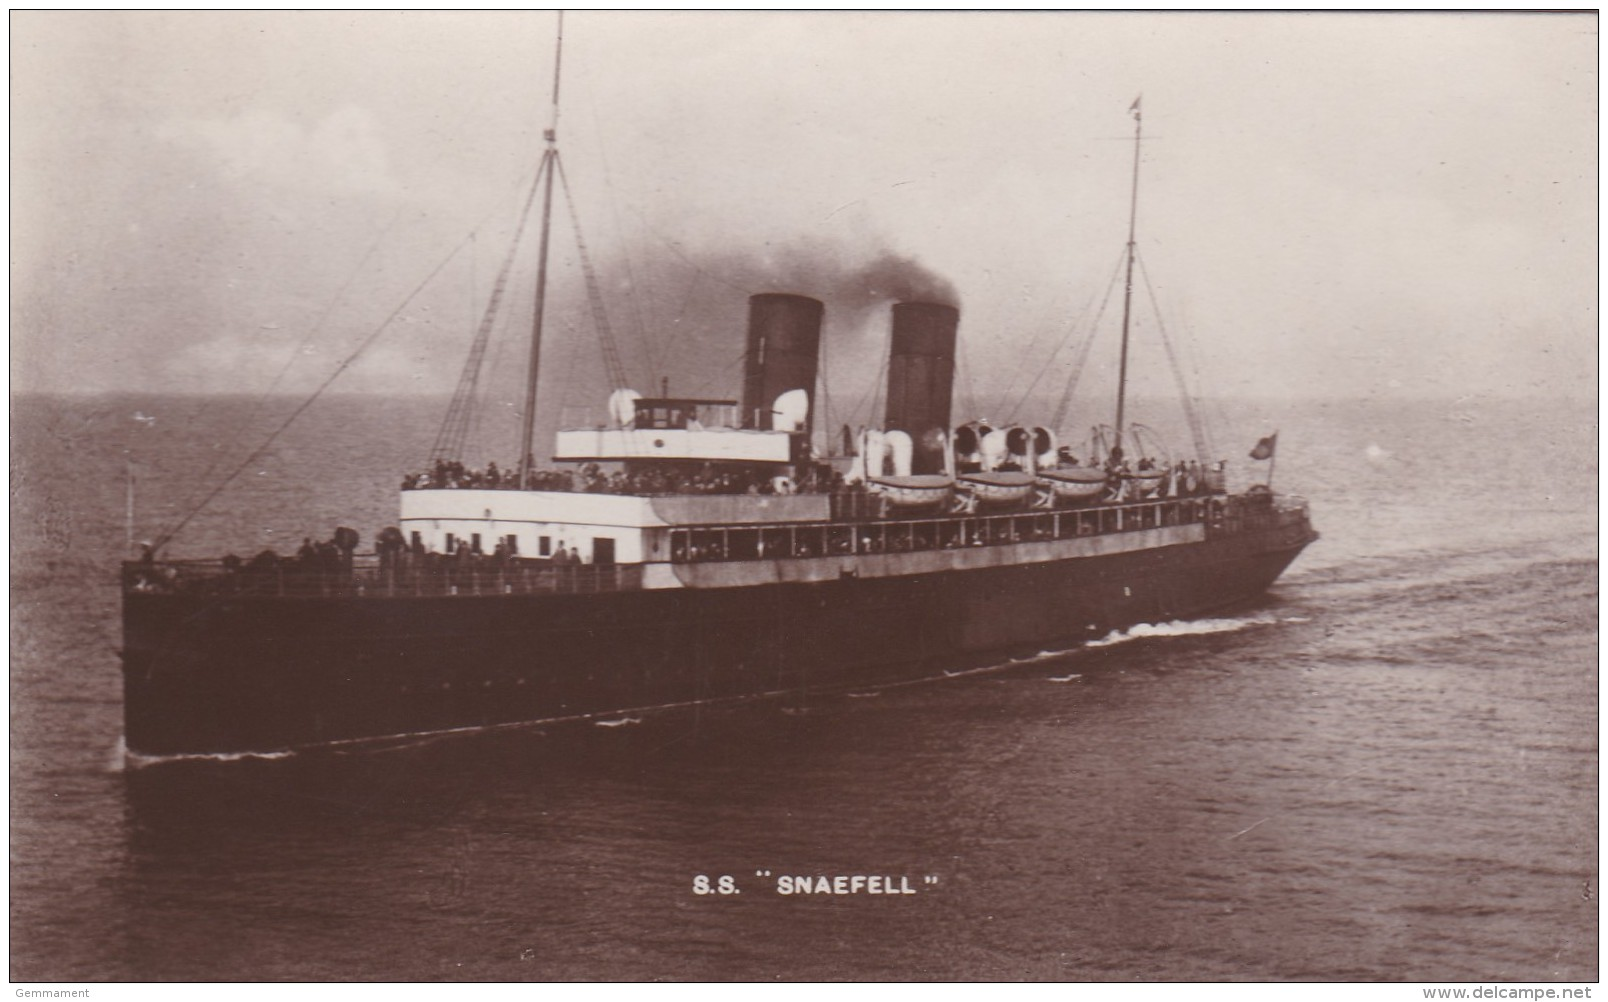 S.S. SNAEFELL - Paquebote